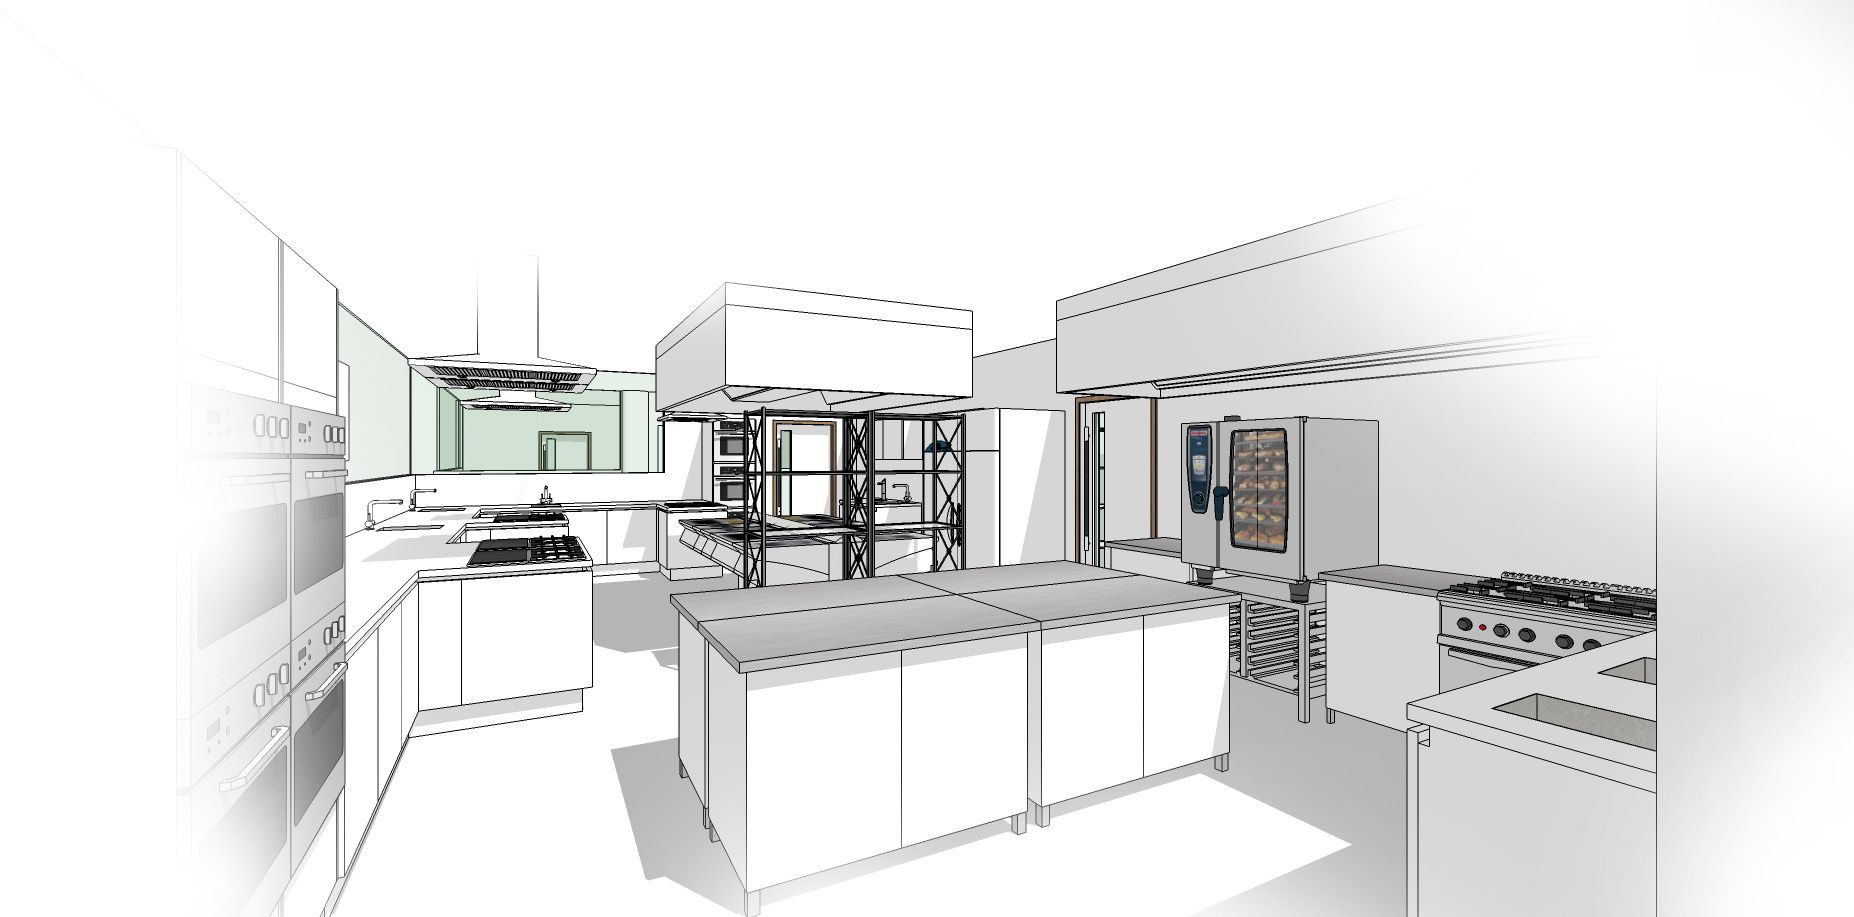 Sketchup Texture Model Vray Kitchen Design Cad Interior Sketchup Texture Model Vray Kitchen